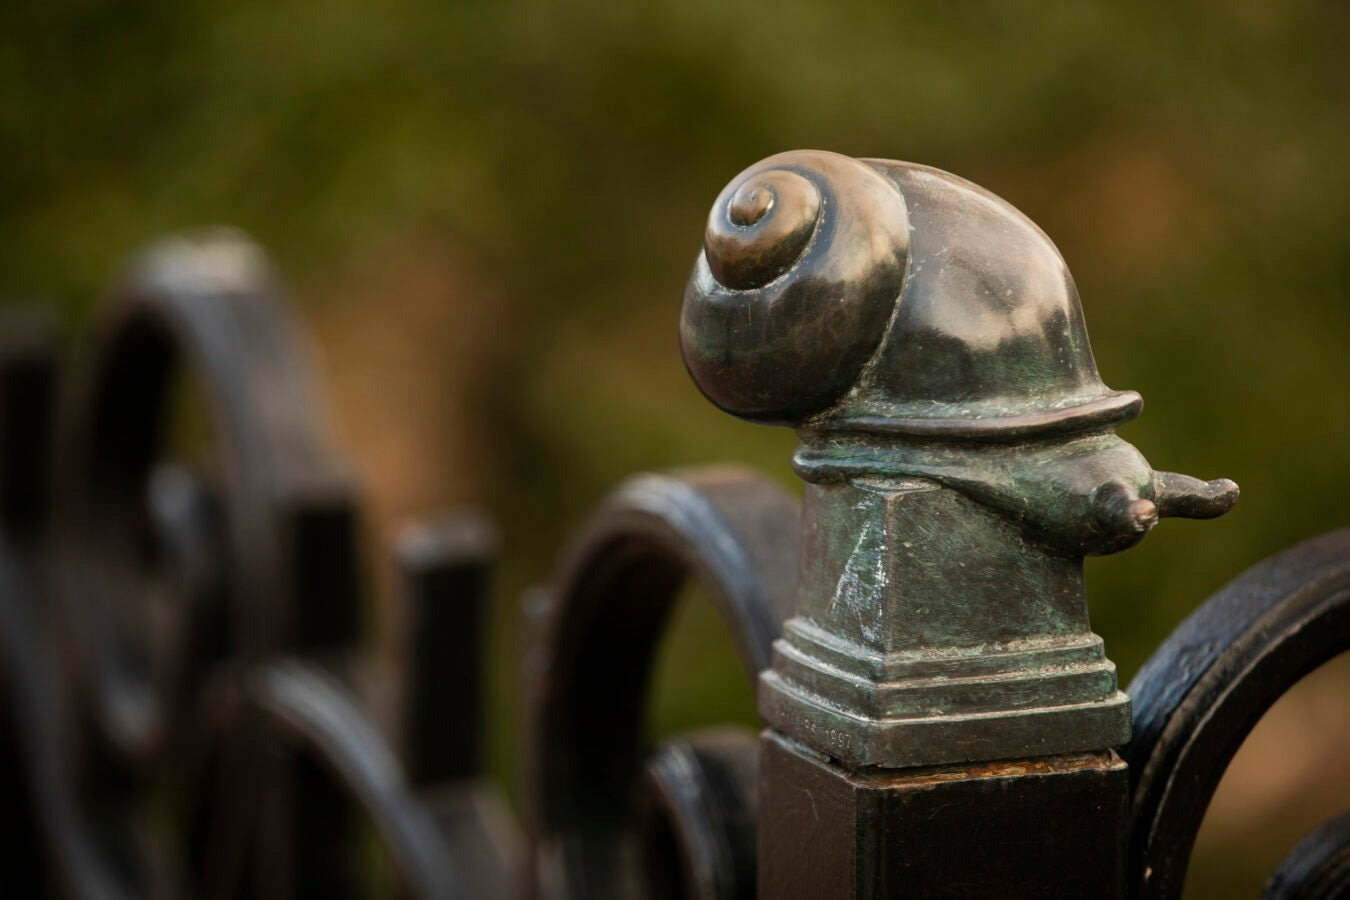 A snail decorates a fence in Quincy Square.